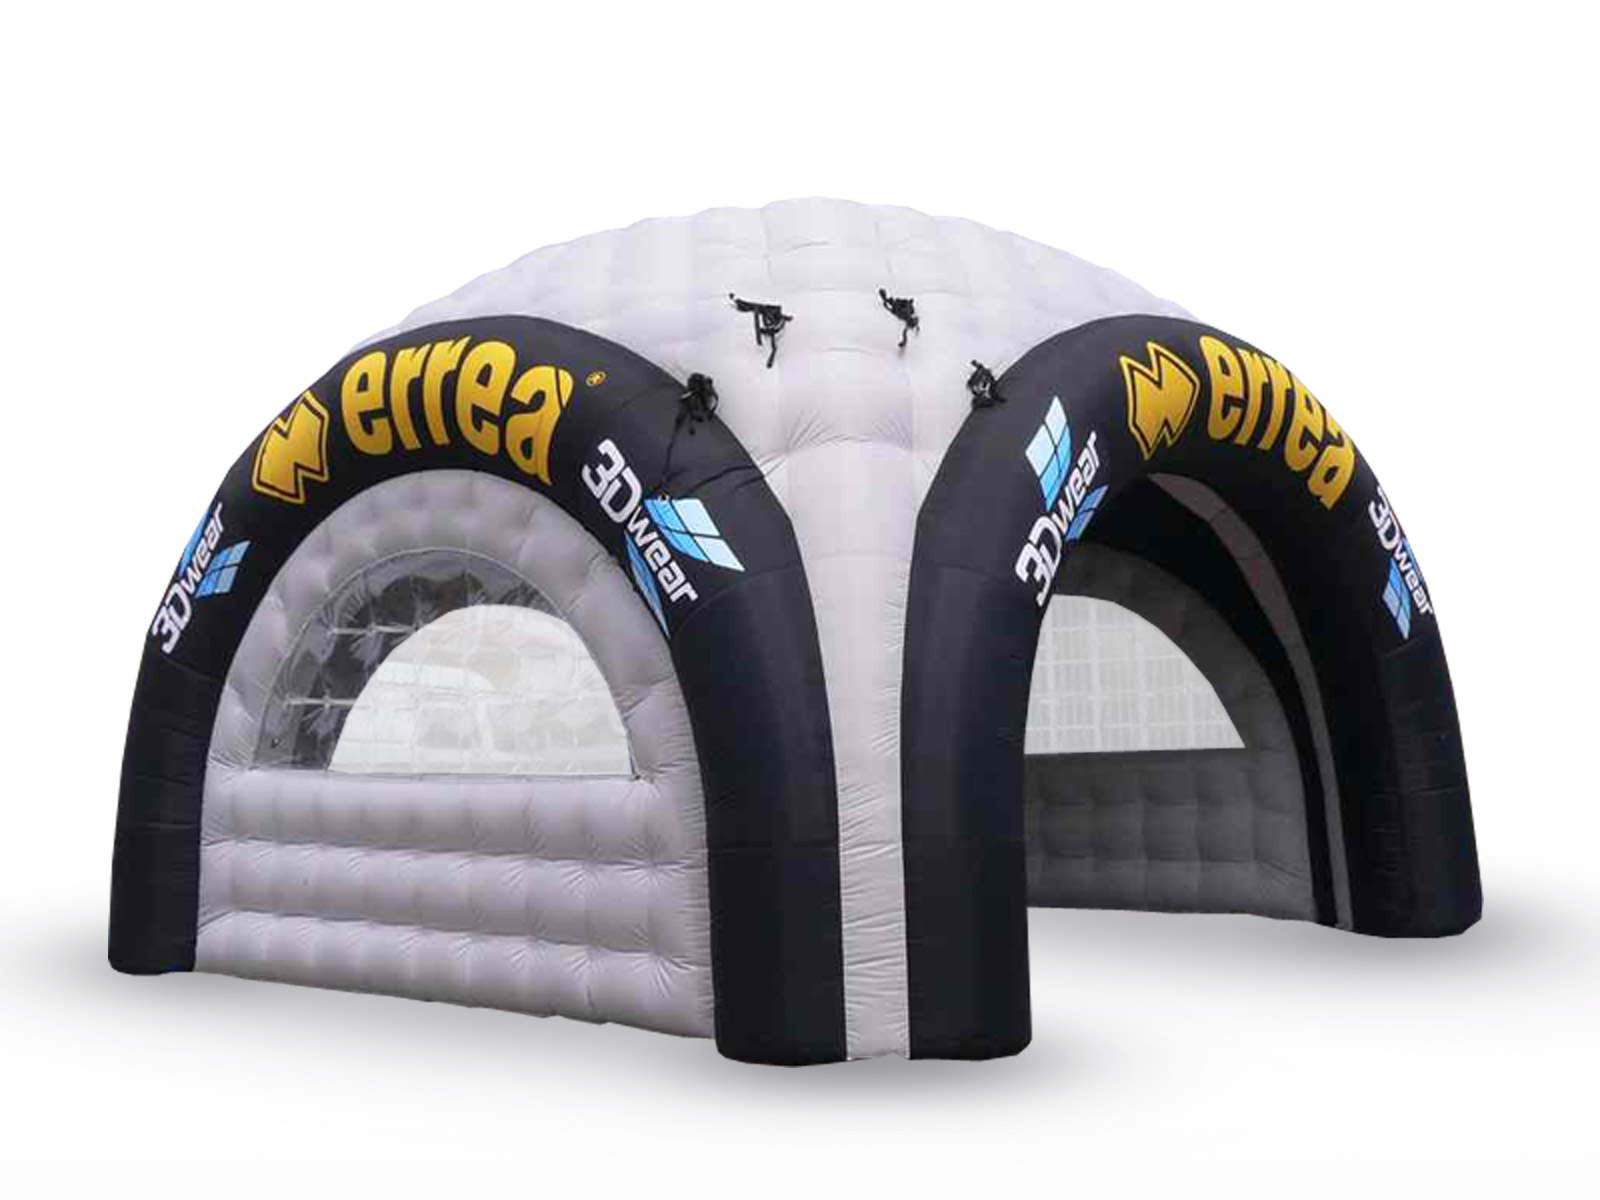 Blow-up tent Archi 6 m full print